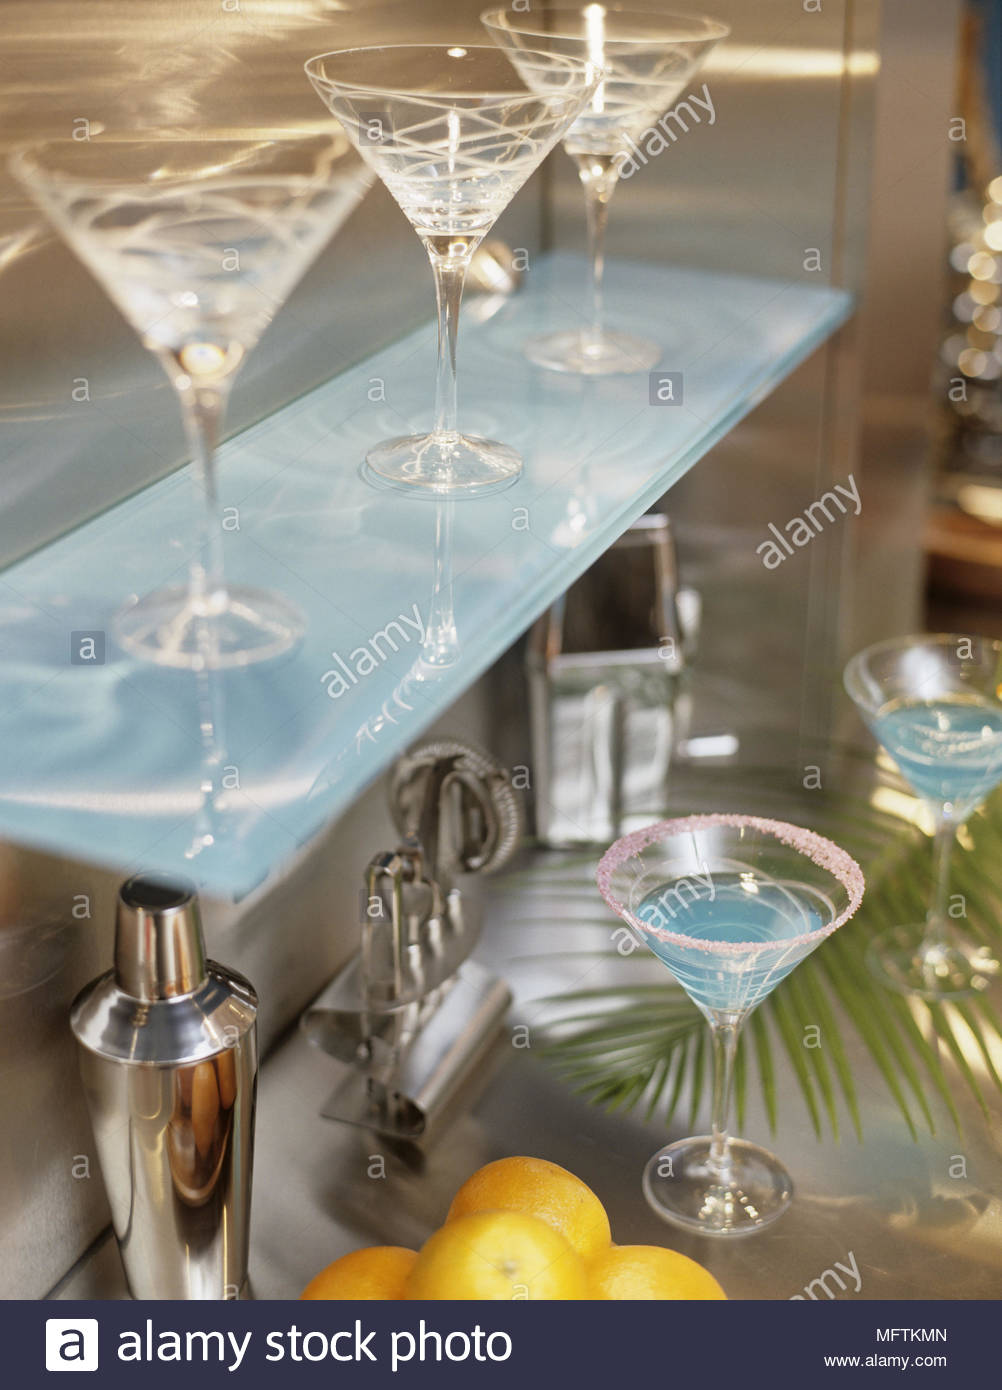 A detail of a modern bar area glass shelf with martini glasses ...